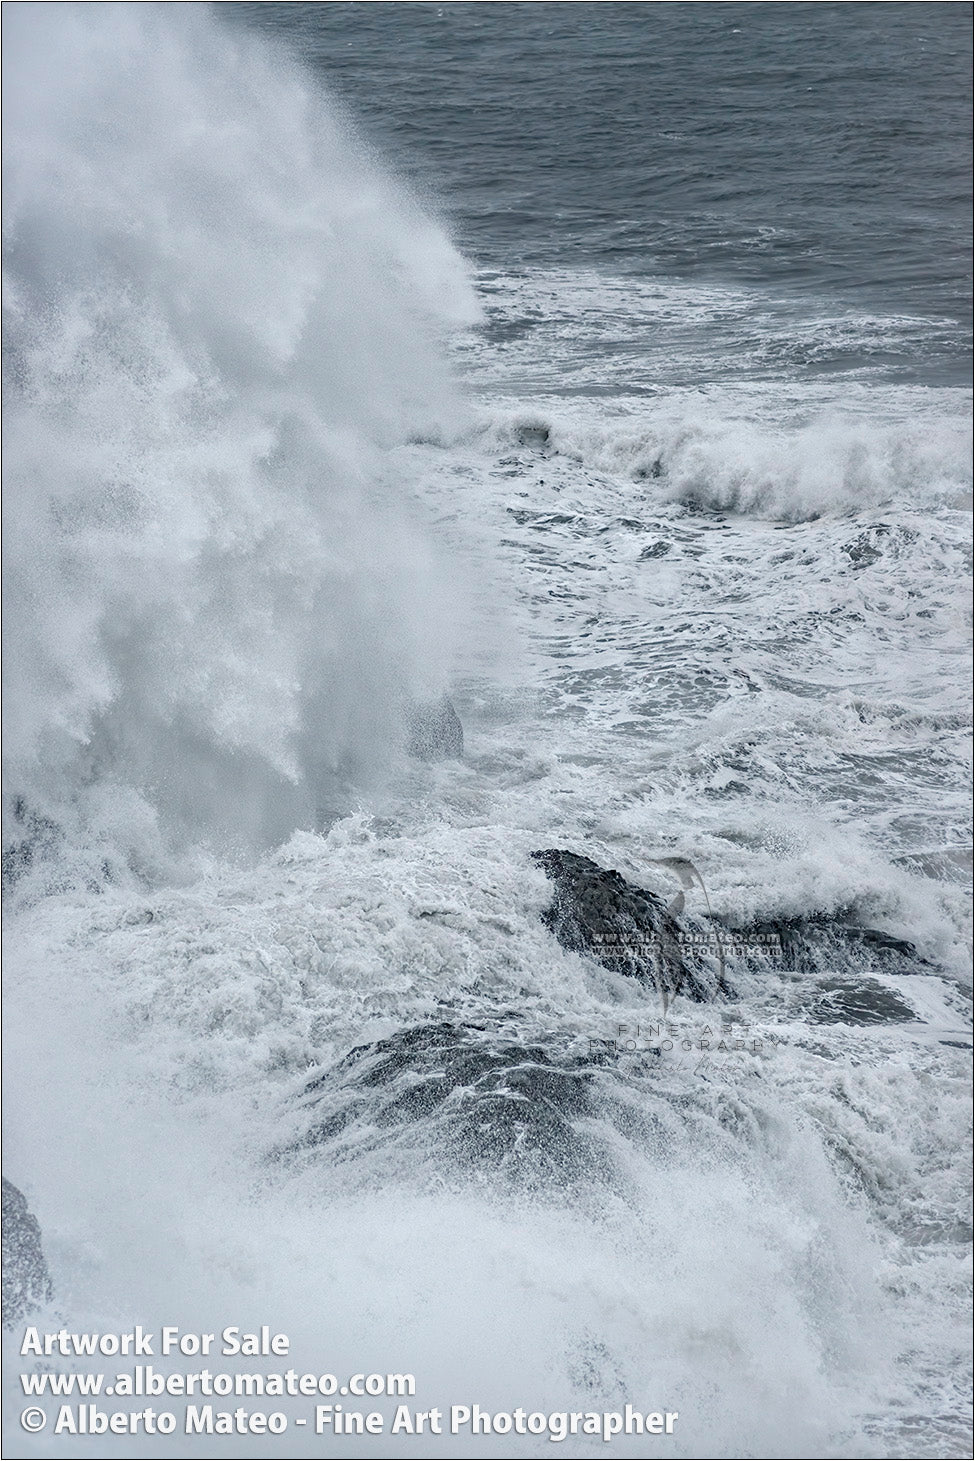 Sea Gale, Breaking Waves, Dyorhaley, Iceland. 3/5